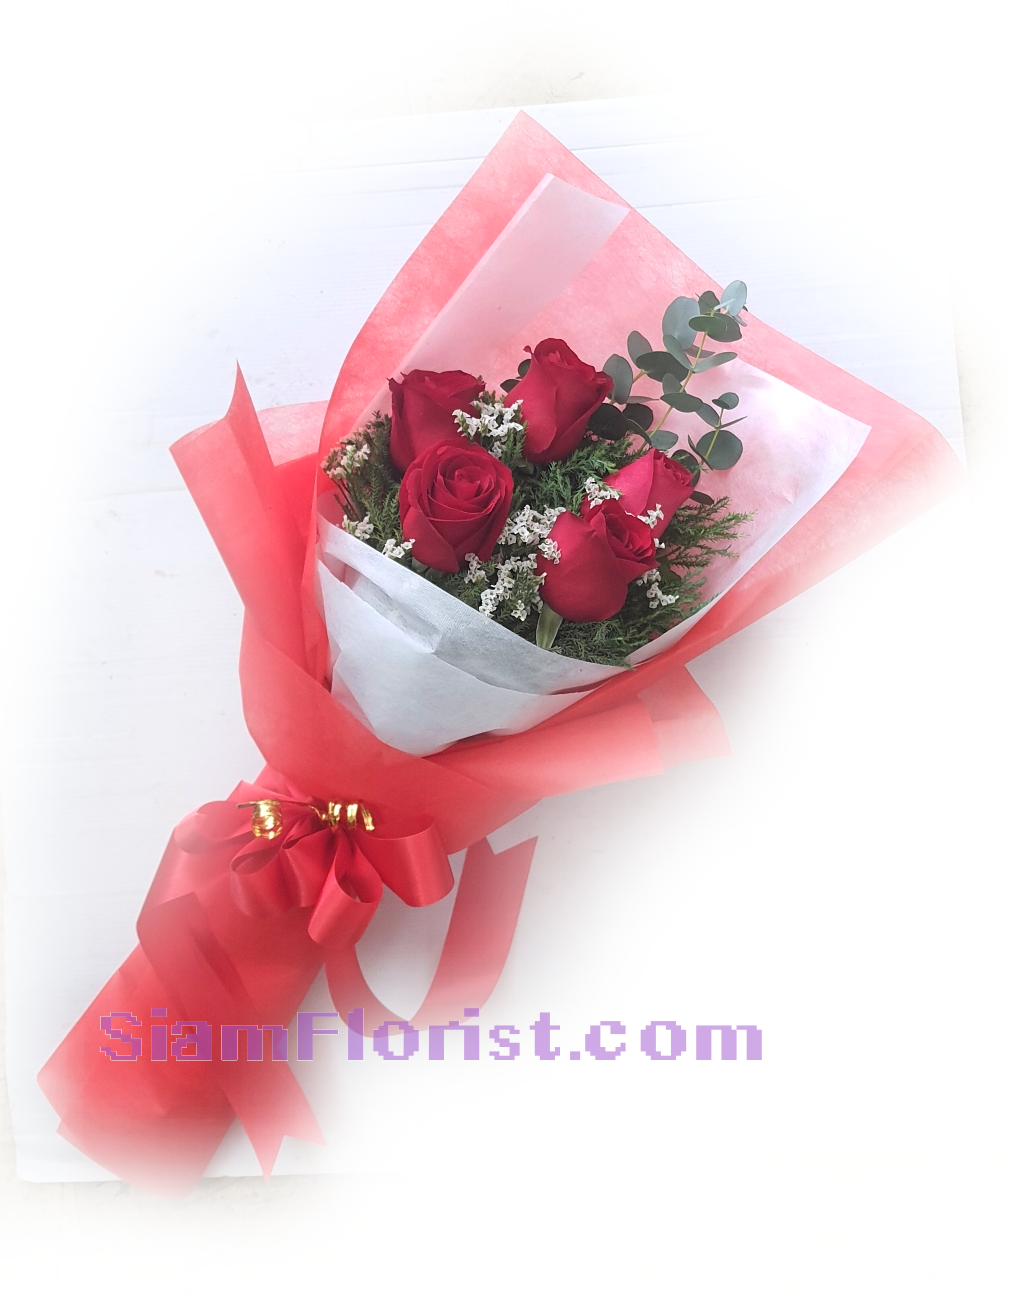 01877RO Bouquet of Roses